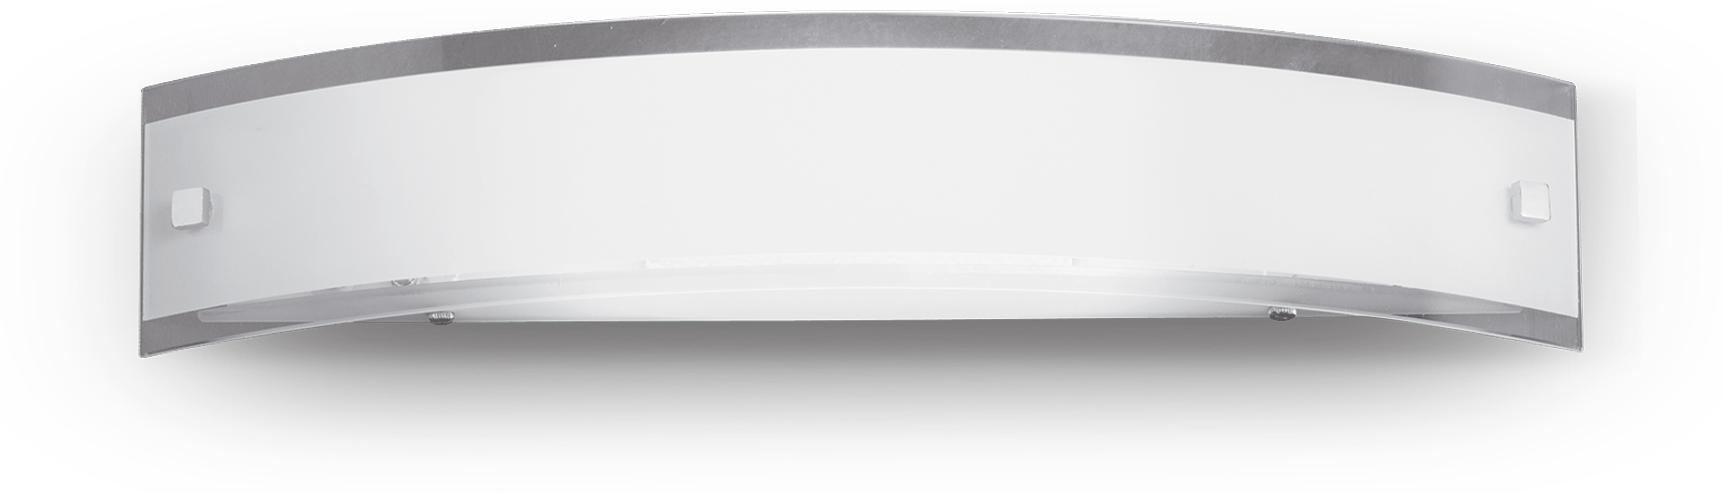 Ideal lux LED denis ap1 medium Wandleuchte 6W 5454